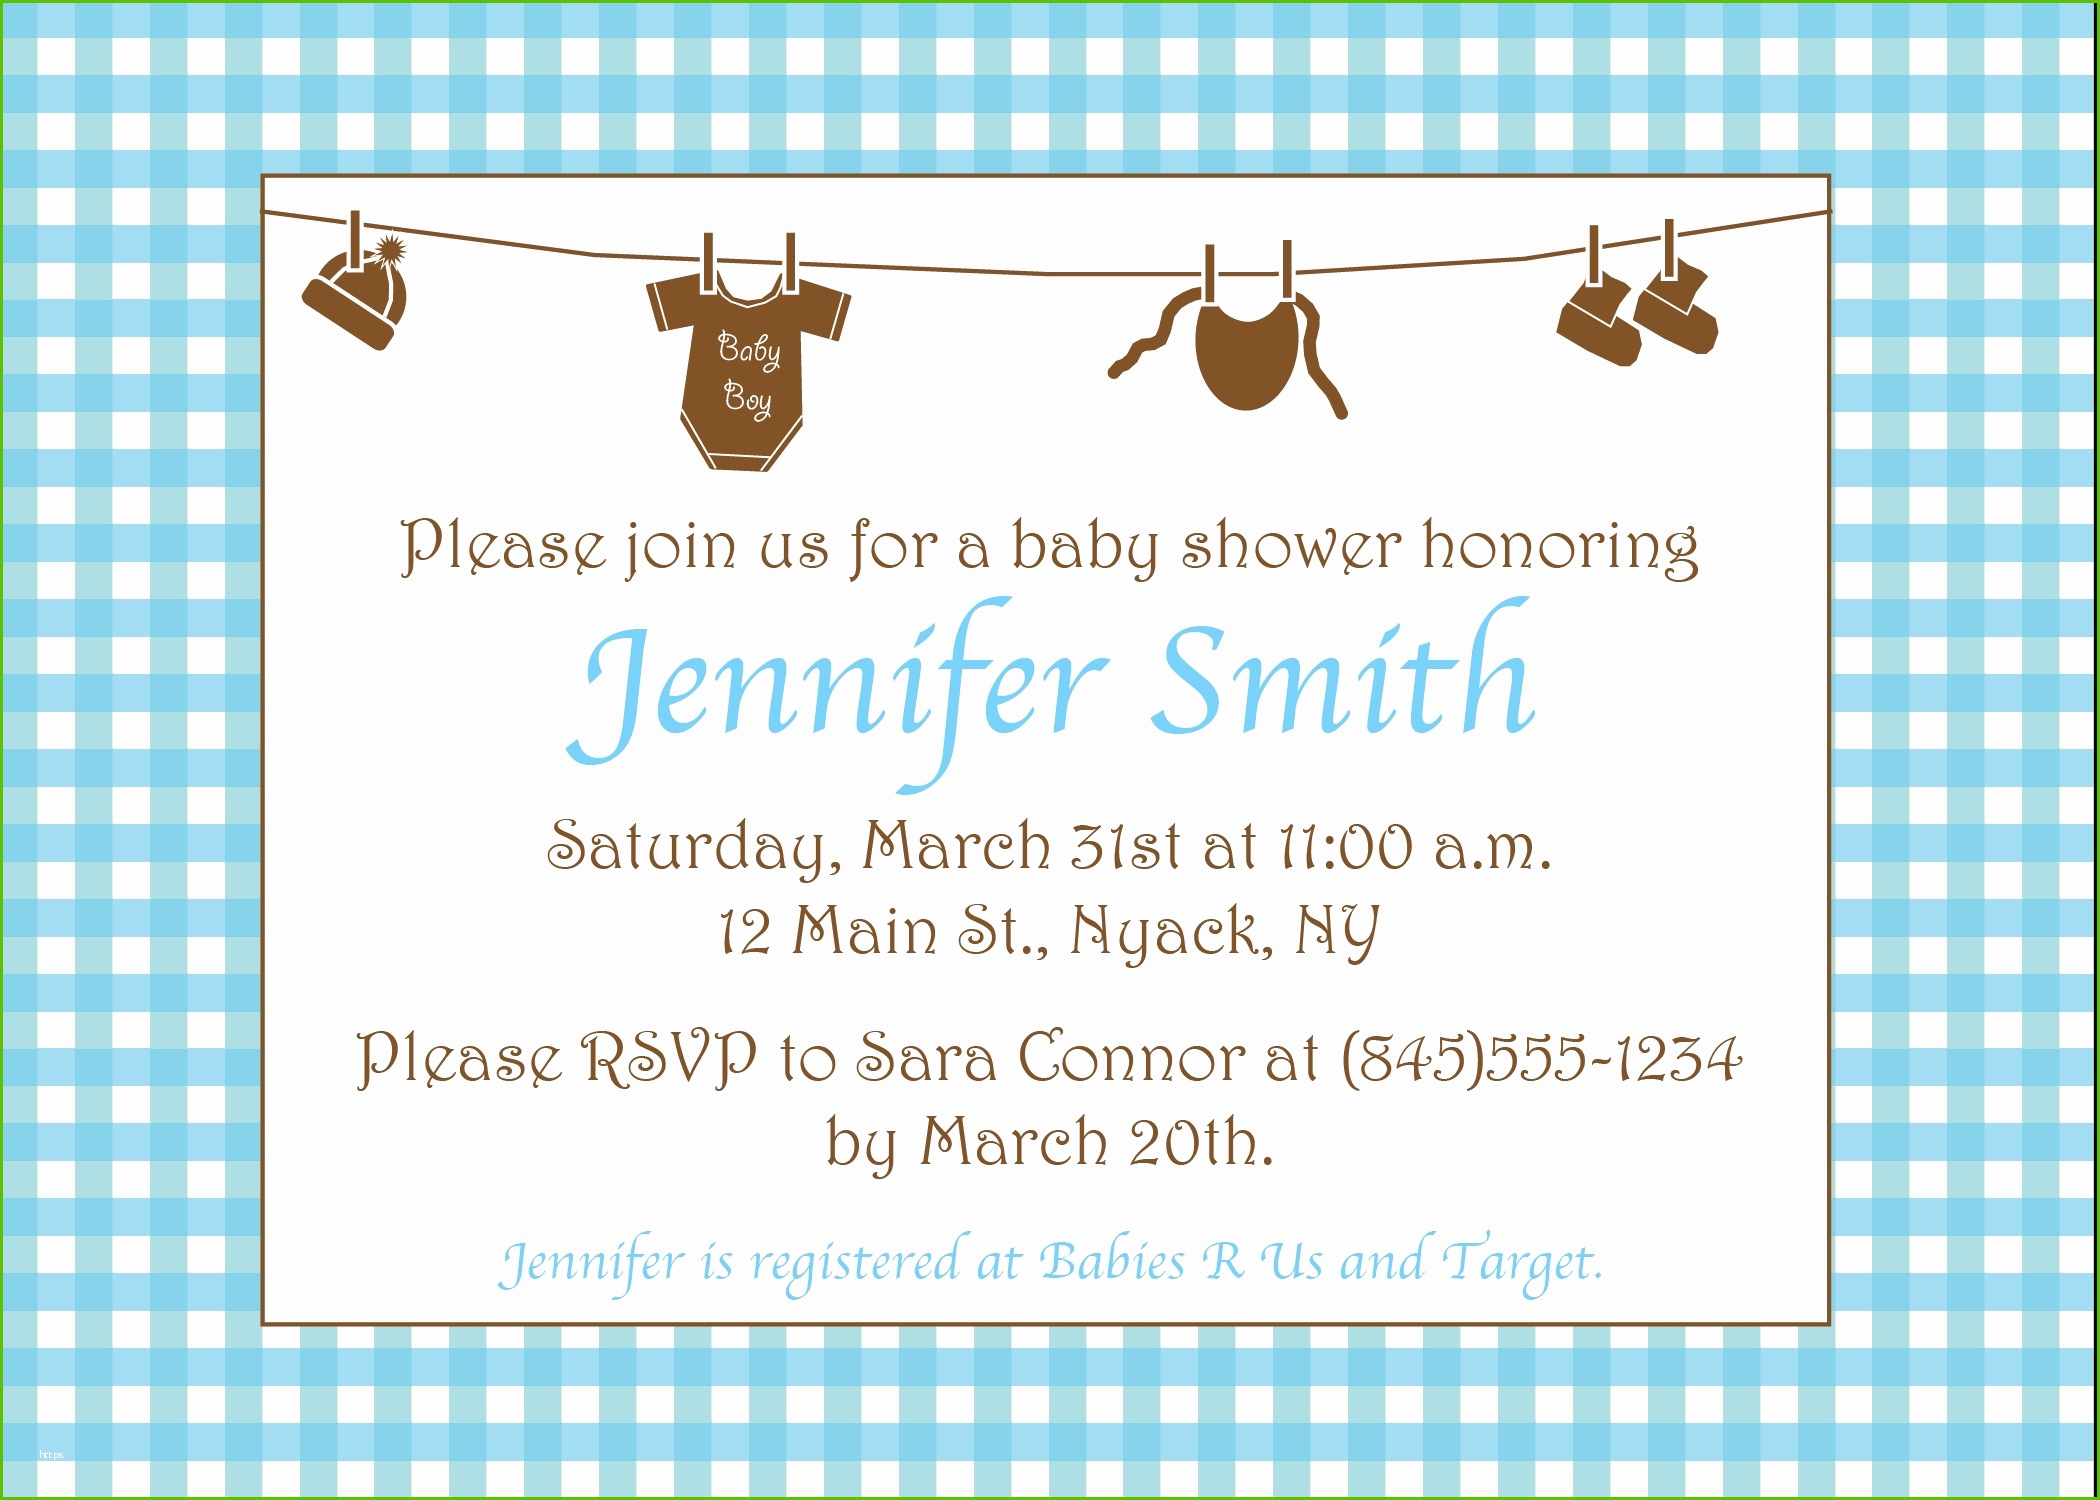 Full Size of Baby Shower:baby Shower Halls With Baby Shower At The Park Plus Recuerdos De Baby Shower Together With Fun Baby Shower Games As Well As Baby Shower Hostess Gifts And Baby Shower Verses Baby Shower Invitation Wording Baby Shower Invitation Wording Examples Beautiful Example Baby Shower Invitation